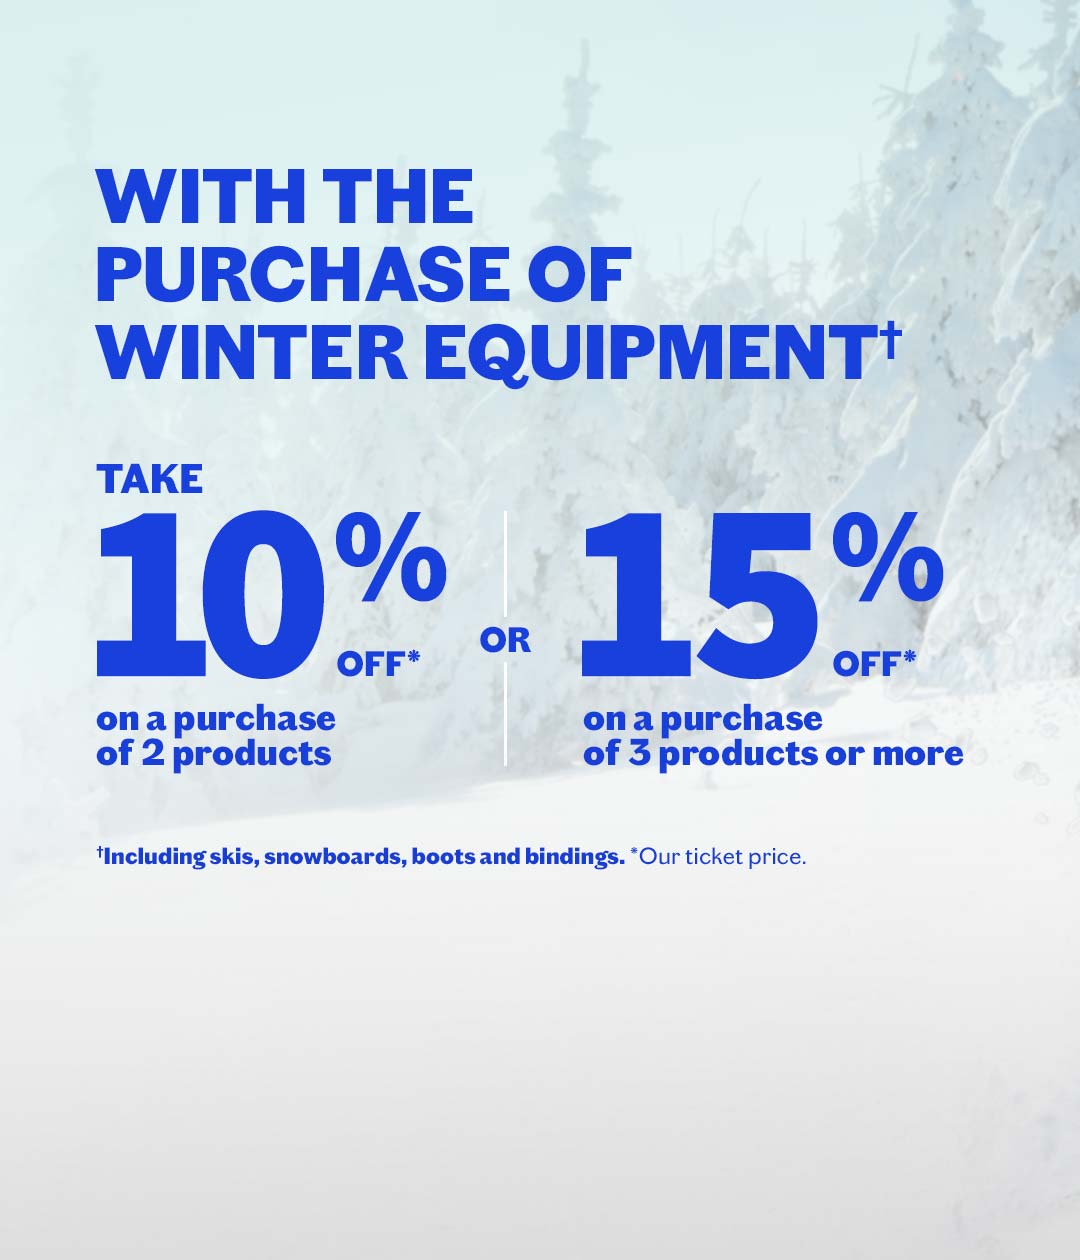 BE READY WITH OUR WINTER EQUIPMENT PROMOTION !